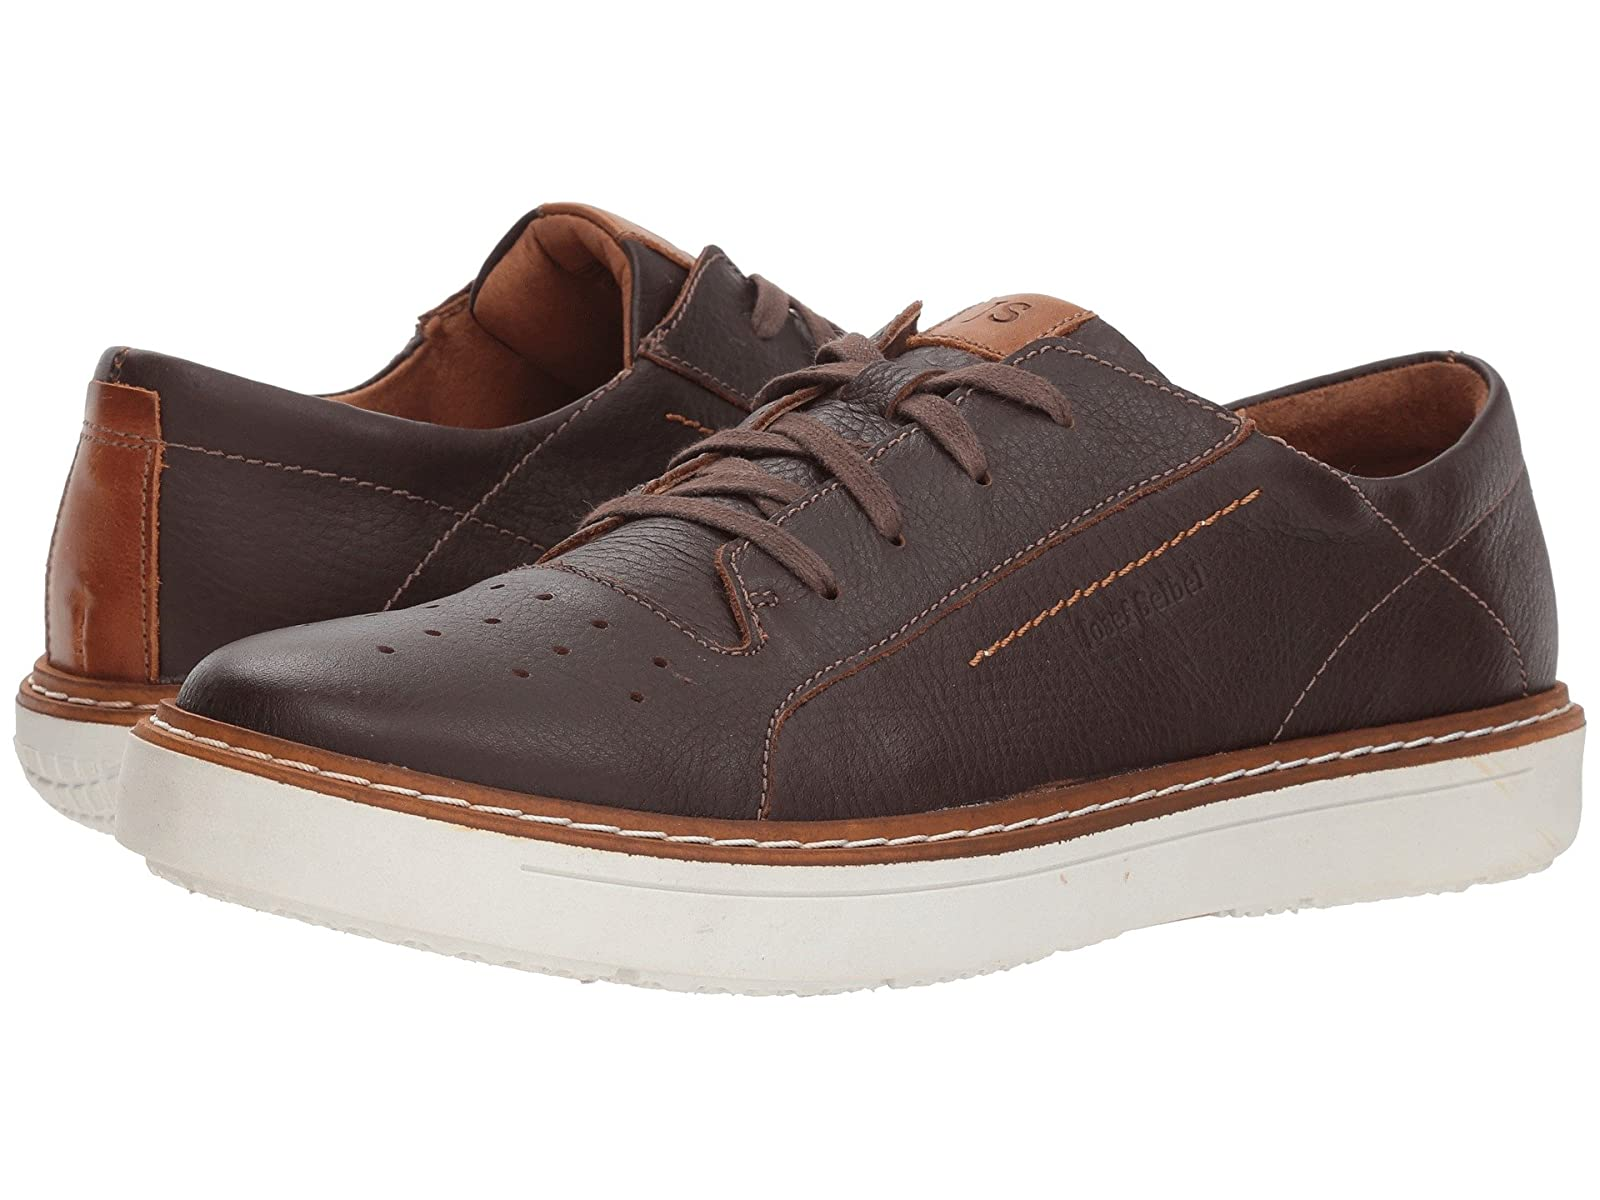 Josef Seibel Quentin 03Atmospheric grades have affordable shoes